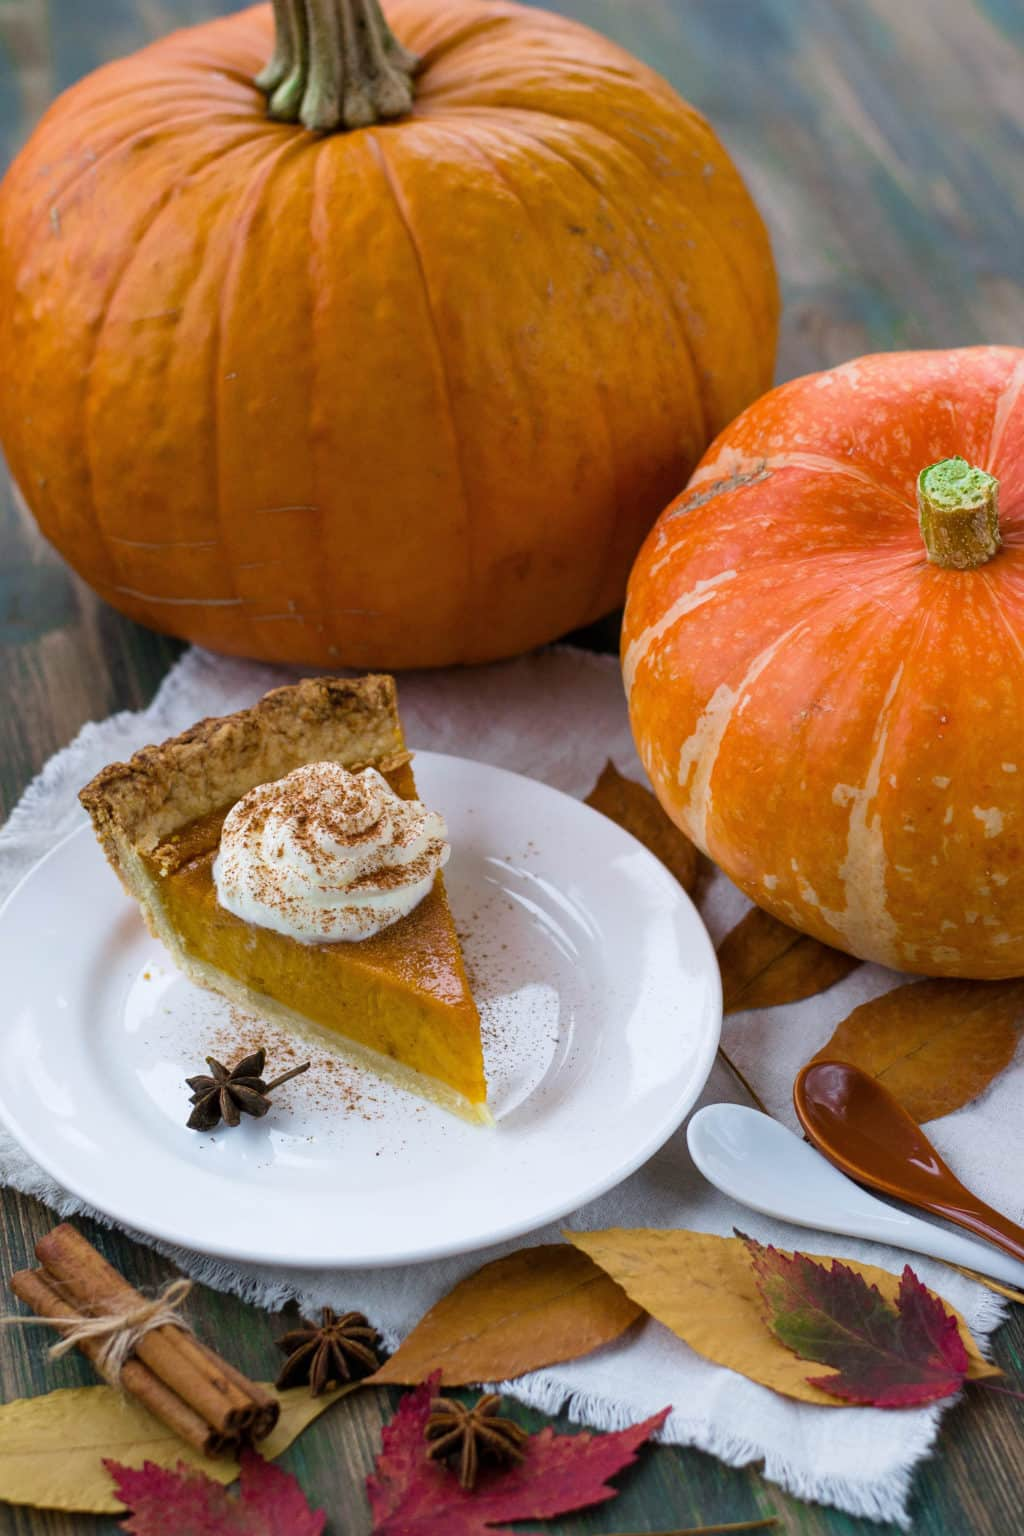 Piece of pumpkin pie and two pumpkins sitting next to it. Ready for Thanksgiving.